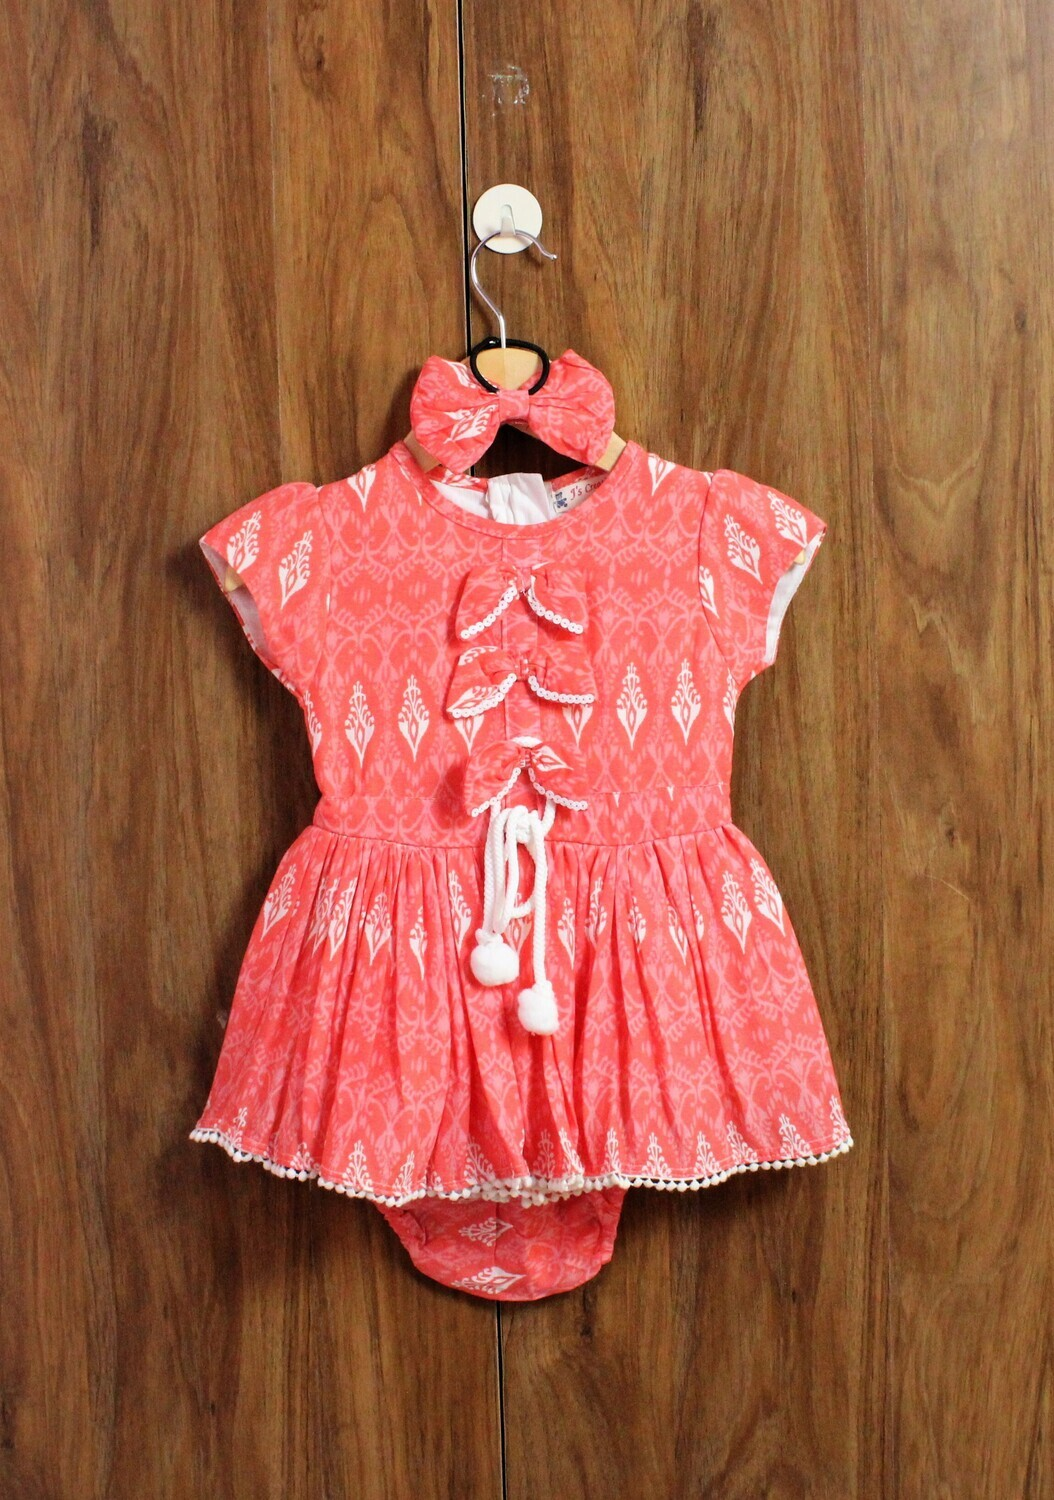 Soft material dress(3 months to 3 Yrs.)